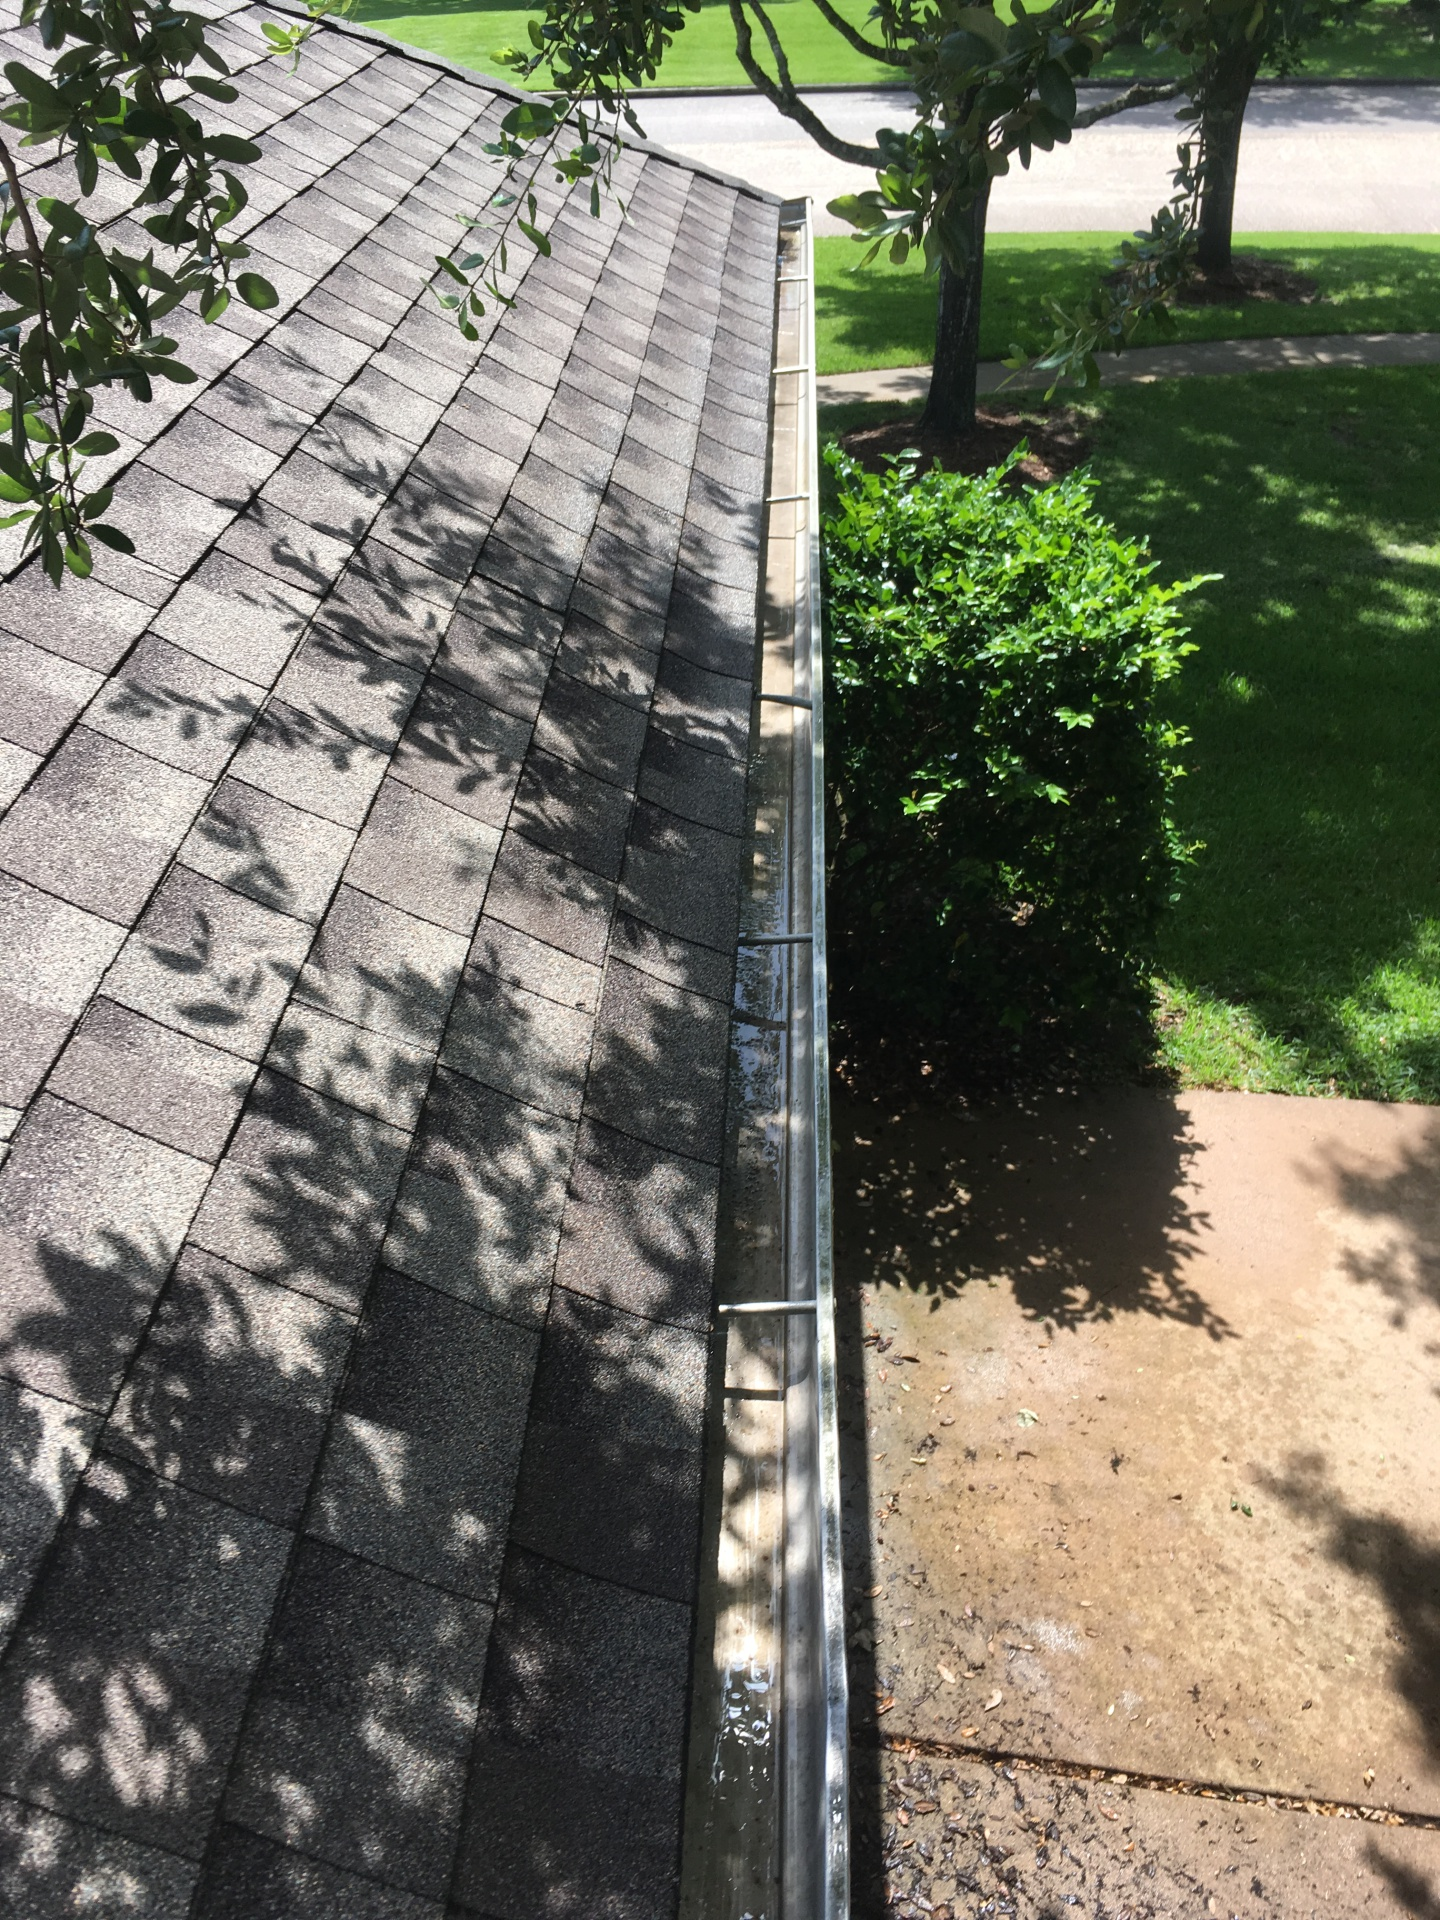 Gutters cleaned of derbies in pearland texas